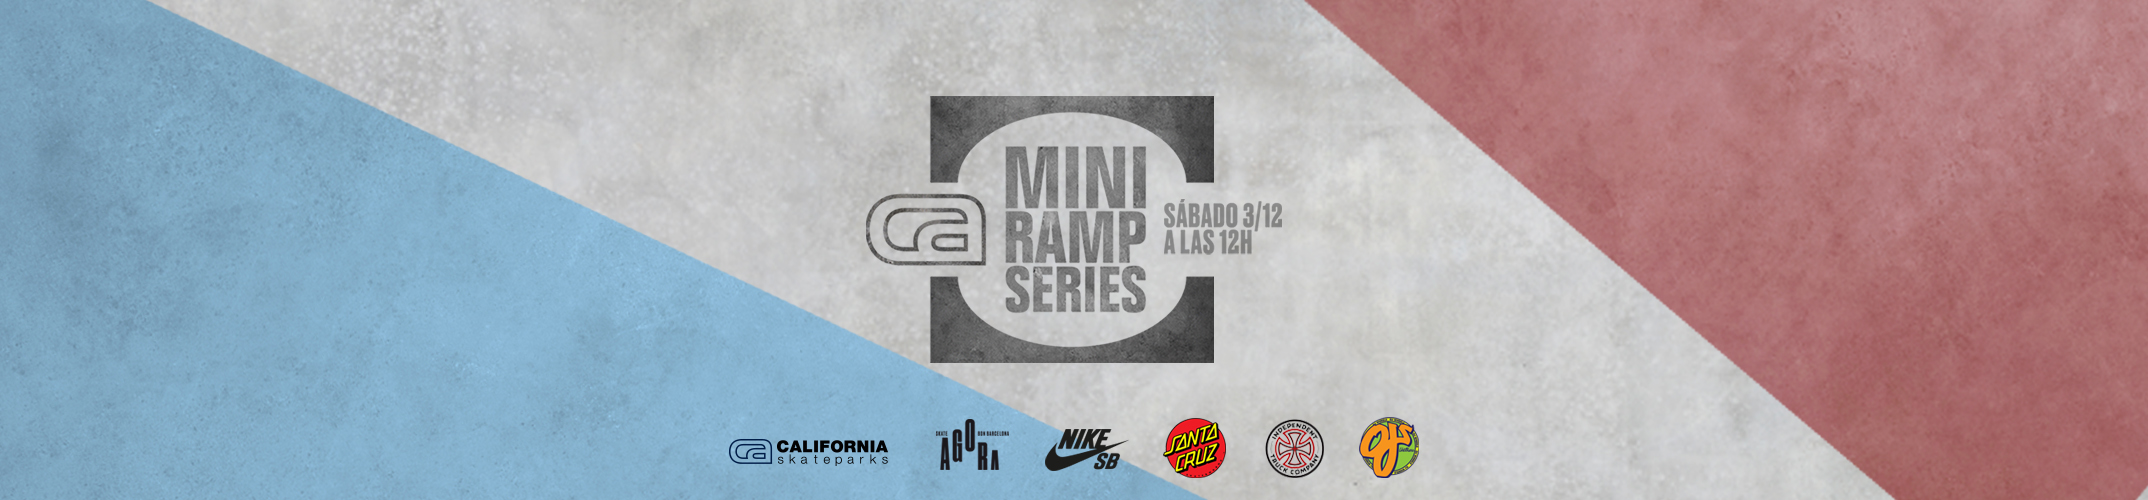 Contest CA Miniramp Series Vol.I, Saturday December 3rd